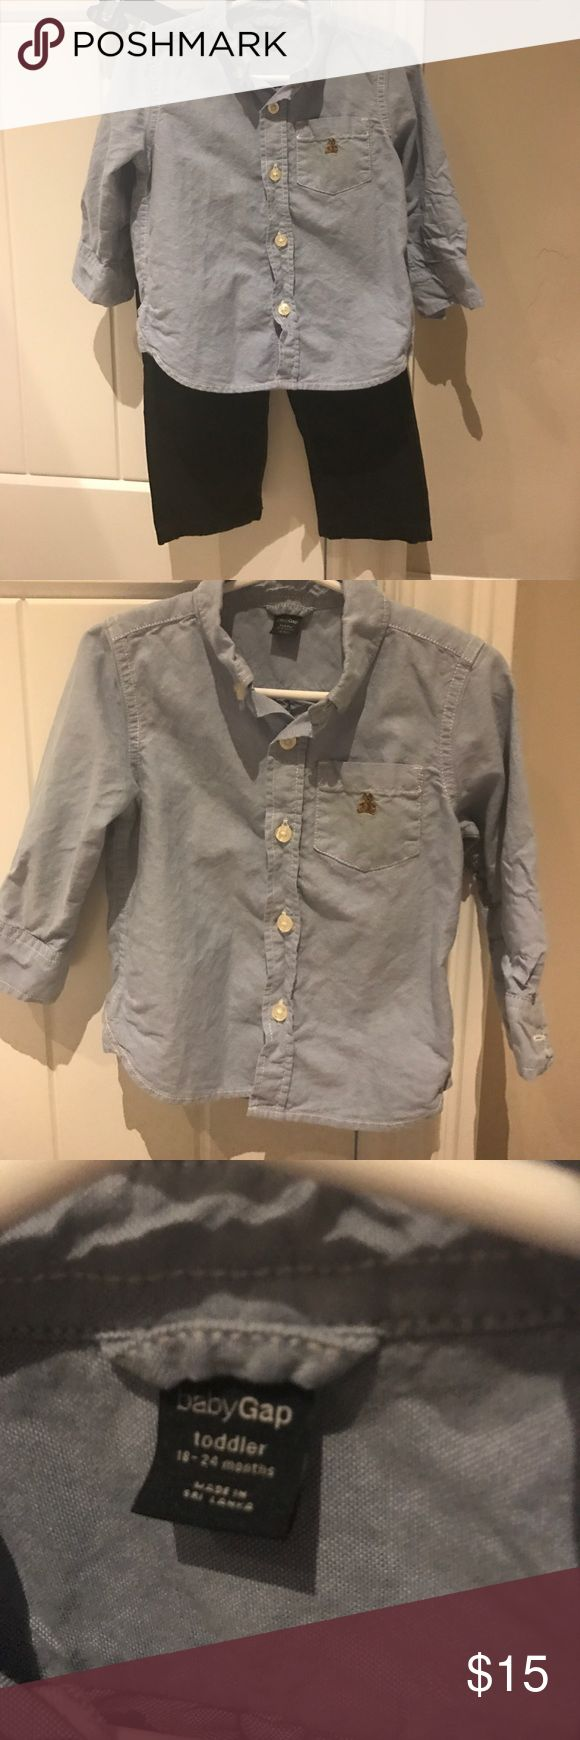 Gap button down shirt and pants Gap blue button down shirt.  Never worn.  No tags attached.  Size 18-24 months.  Also navy pants in size 18-24 months.  Pants have been worn.  Great condition.  Pants have adjustable waist band. GAP Matching Sets